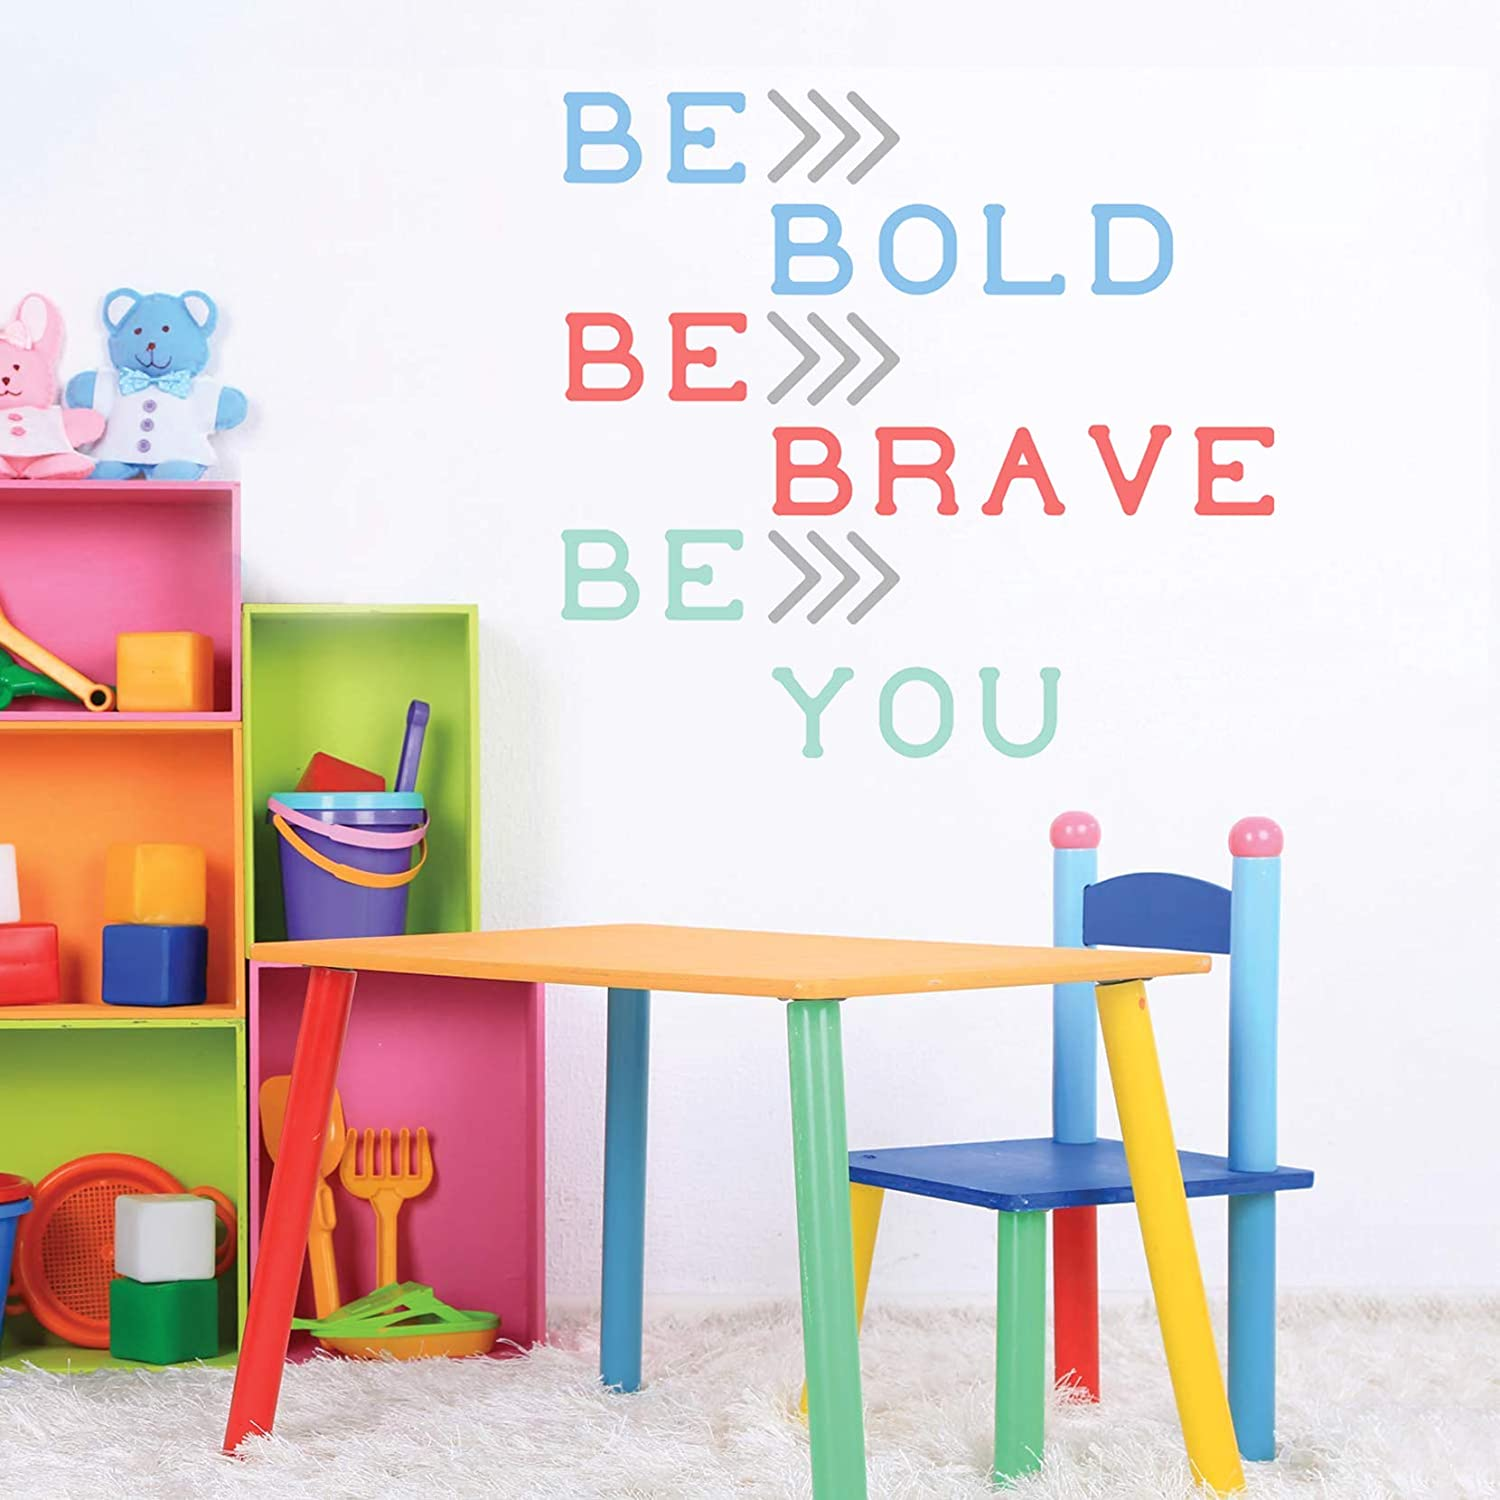 Be Bold Be Brave Be You, Inspirational Quote, Peel and Stick Wall Decals, Colorful Lettering Wall Decals Inspirational Quotes Wall Sticker for Classroom Nursery Kids Room Decor